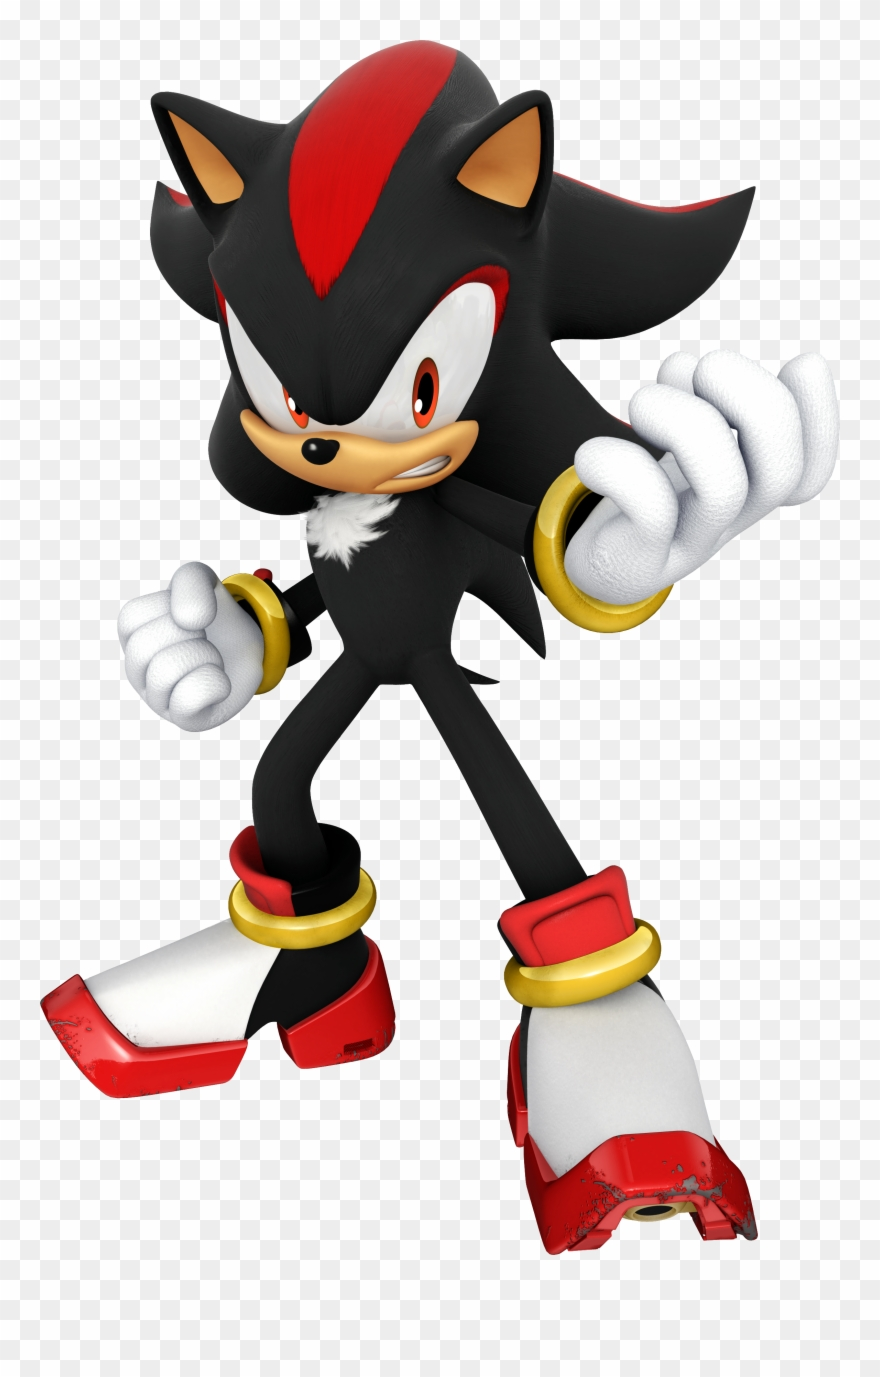 Maxevil Sonic Characters With Similarities To Other Shadow The Hedgehog Clipart 390500 Pinclipart